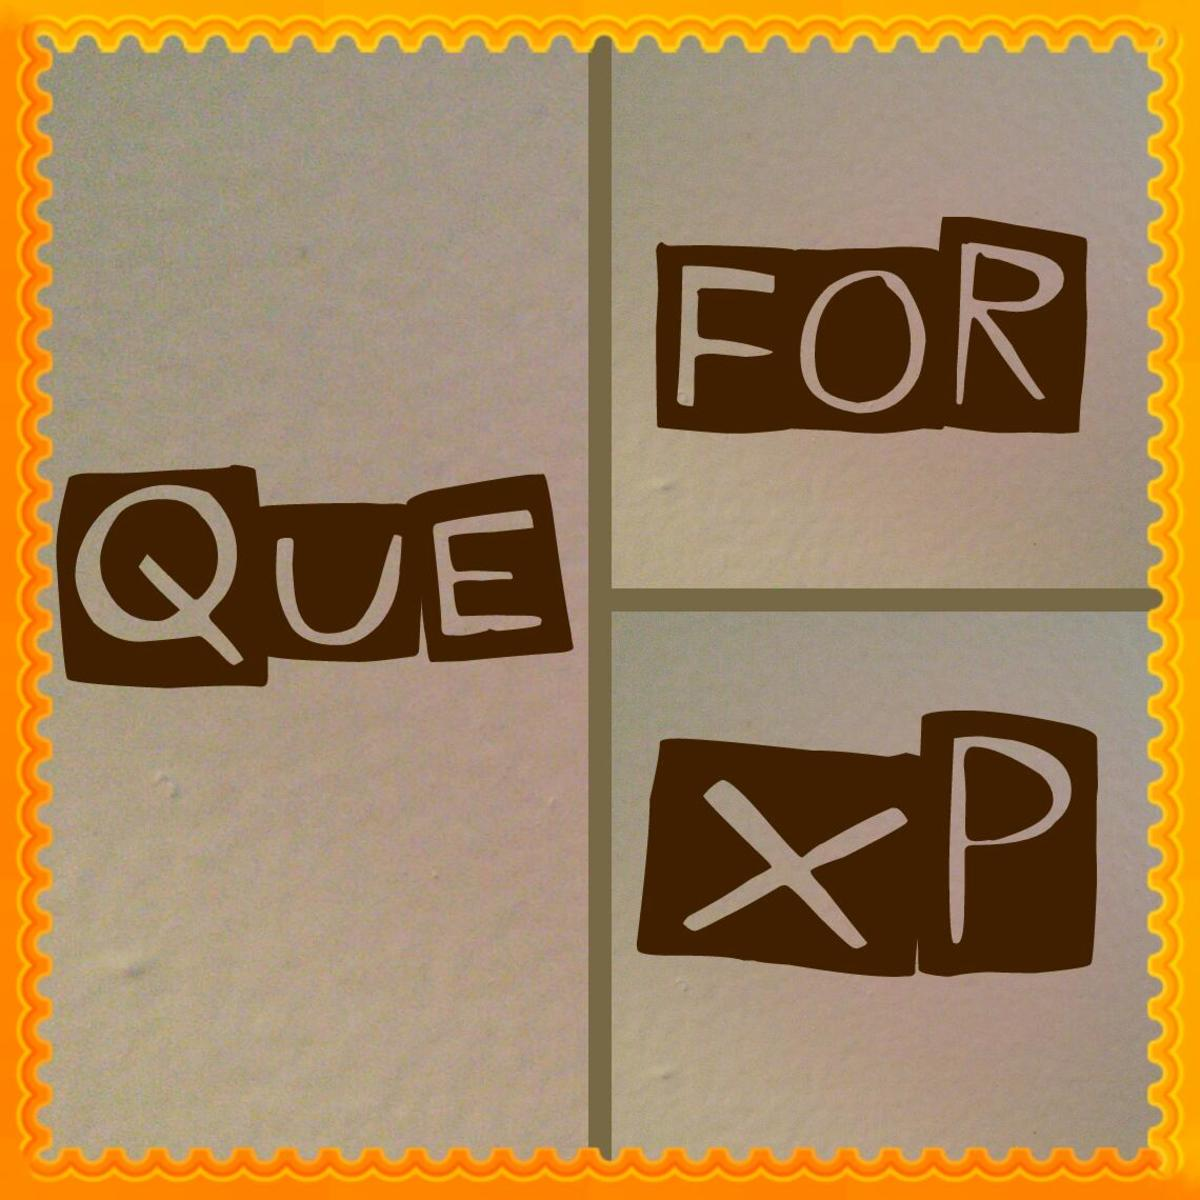 Don't forget to que, or you will miss the extra experience.